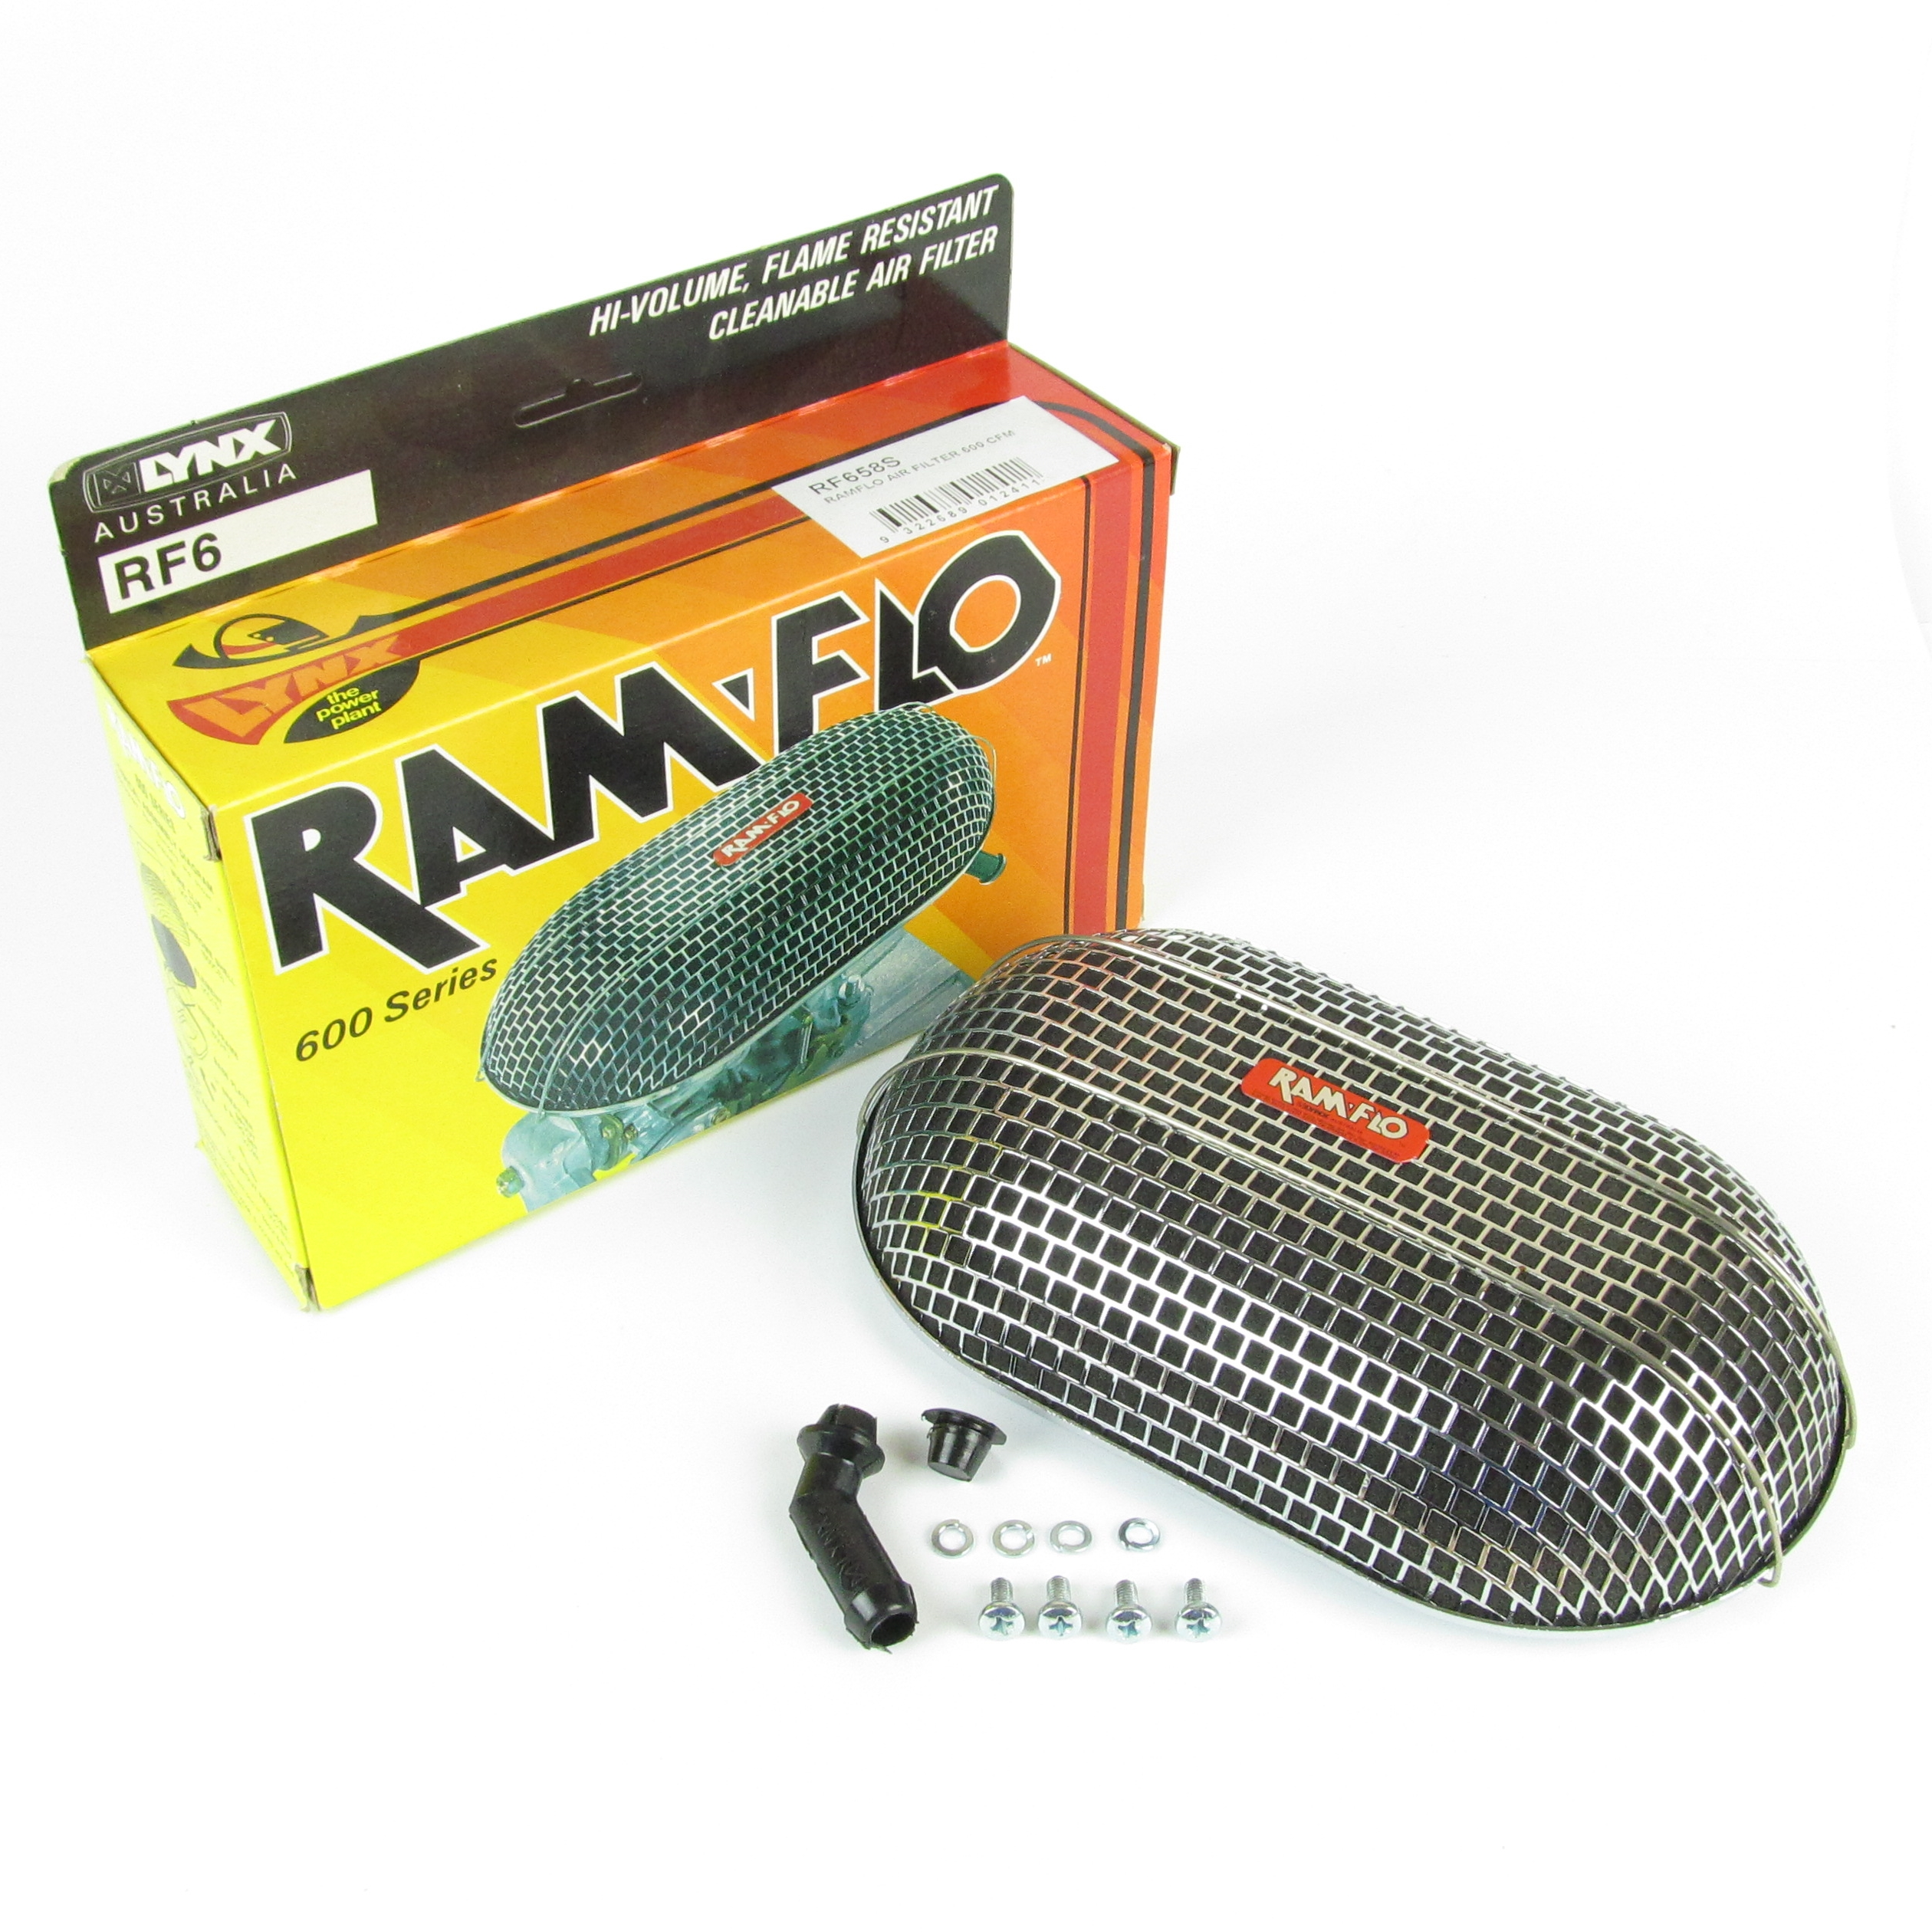 Ramflo filter for Weber DGV, DGAV, DGAS, DGMS carburettors, made by Lynx in Australia. Hi-volume,flame resistant and washable. 600 cubic feet per minute rating. Only 52mm deep, good for installations where space is limited. Approximately 232 mm long x 140mm wide. Includes:- Air filter gasket, Breather pipe adaptor and blanking plug. Note: DGAS Carburettor is shown for illustration purposes, and is not included with filter